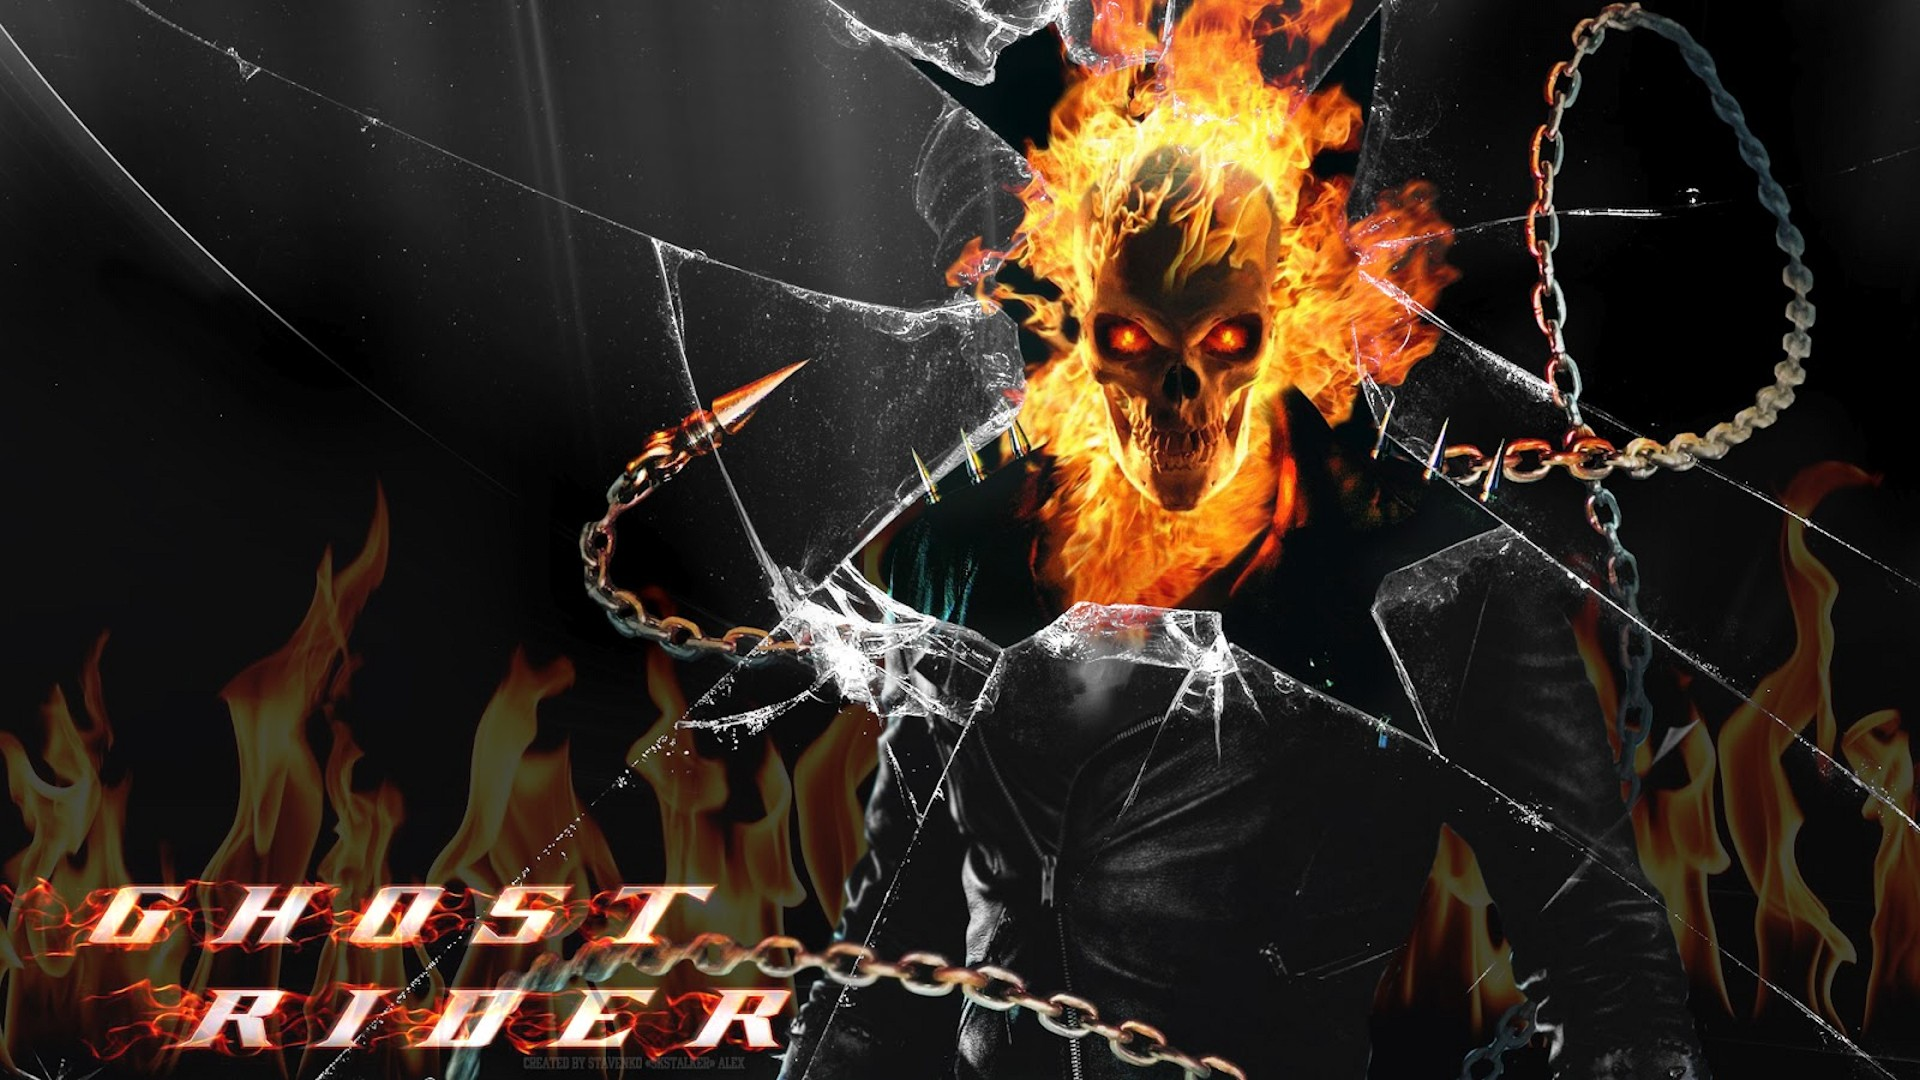 Ghost Rider (2007)   FilmFed - Movies, Ratings, Reviews, and